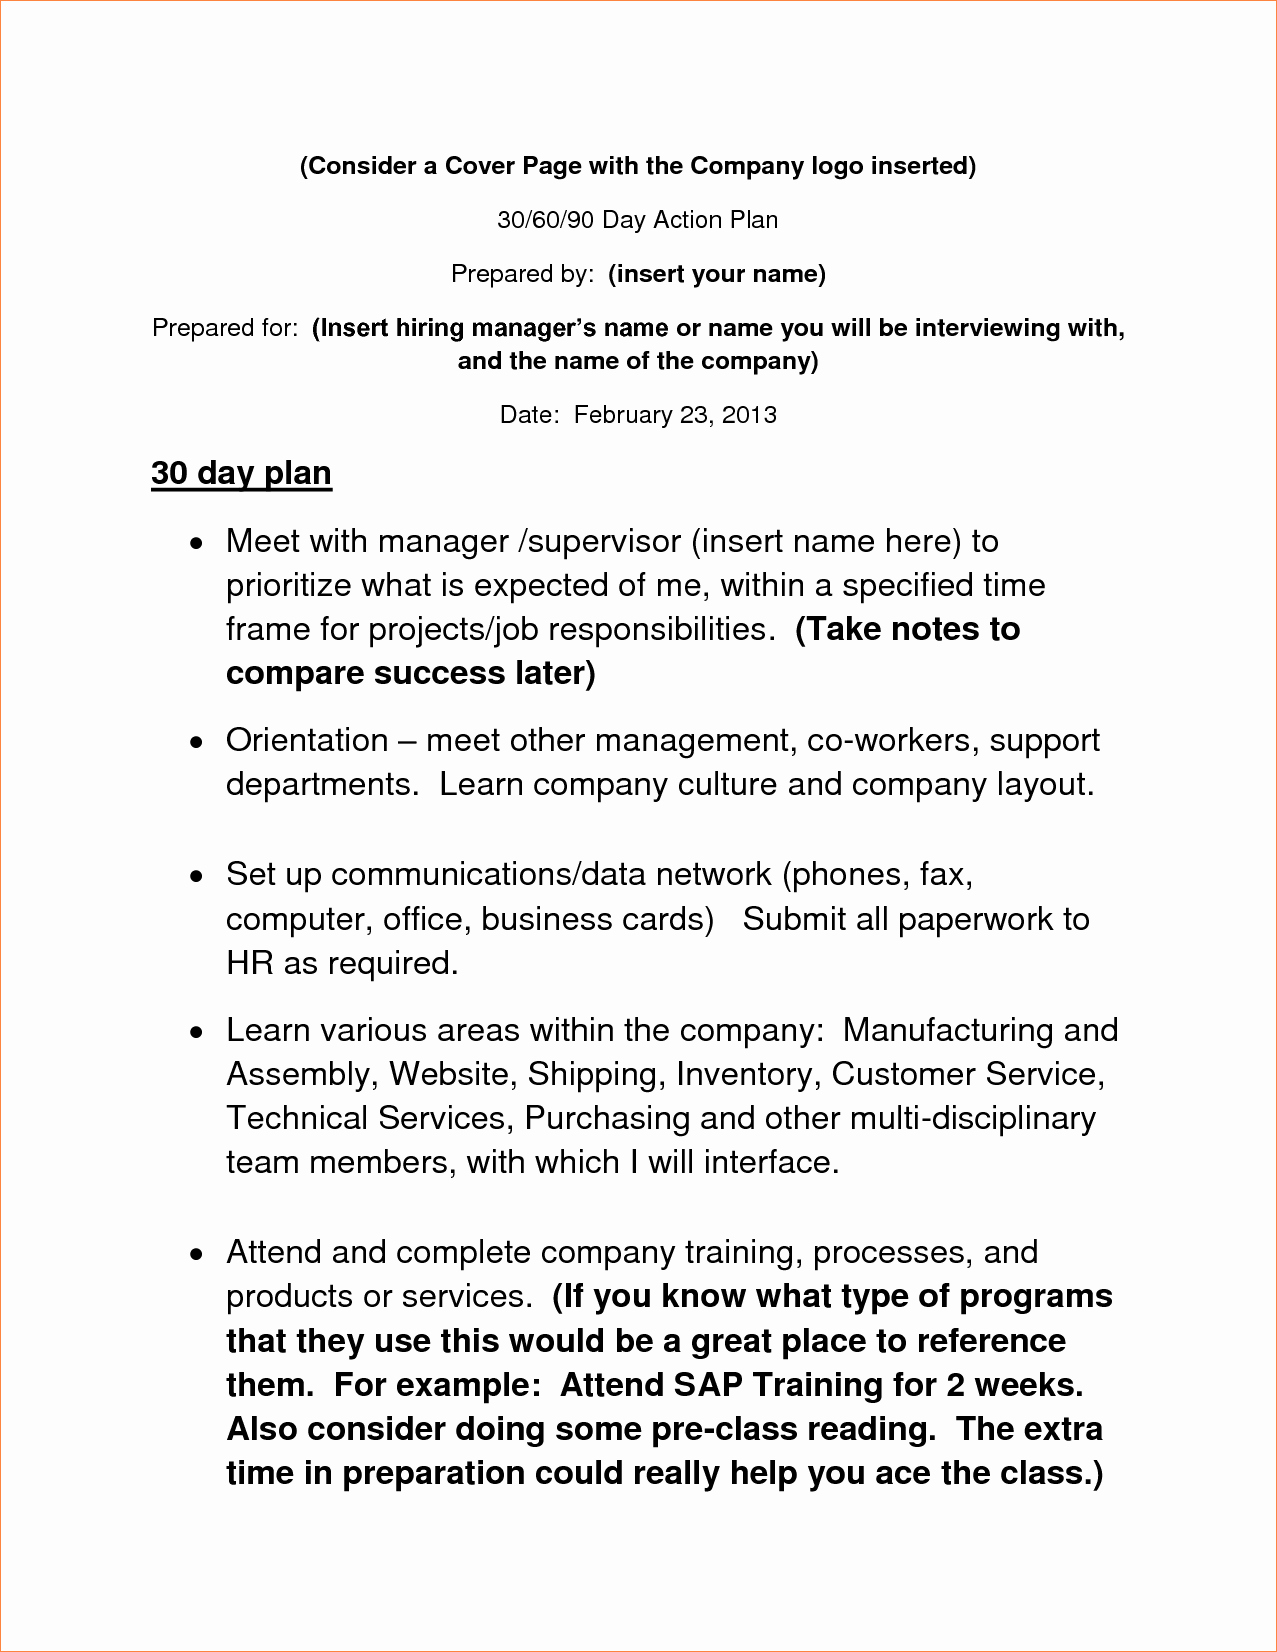 6 30 60 90 Day Action Plan Templatereport Template